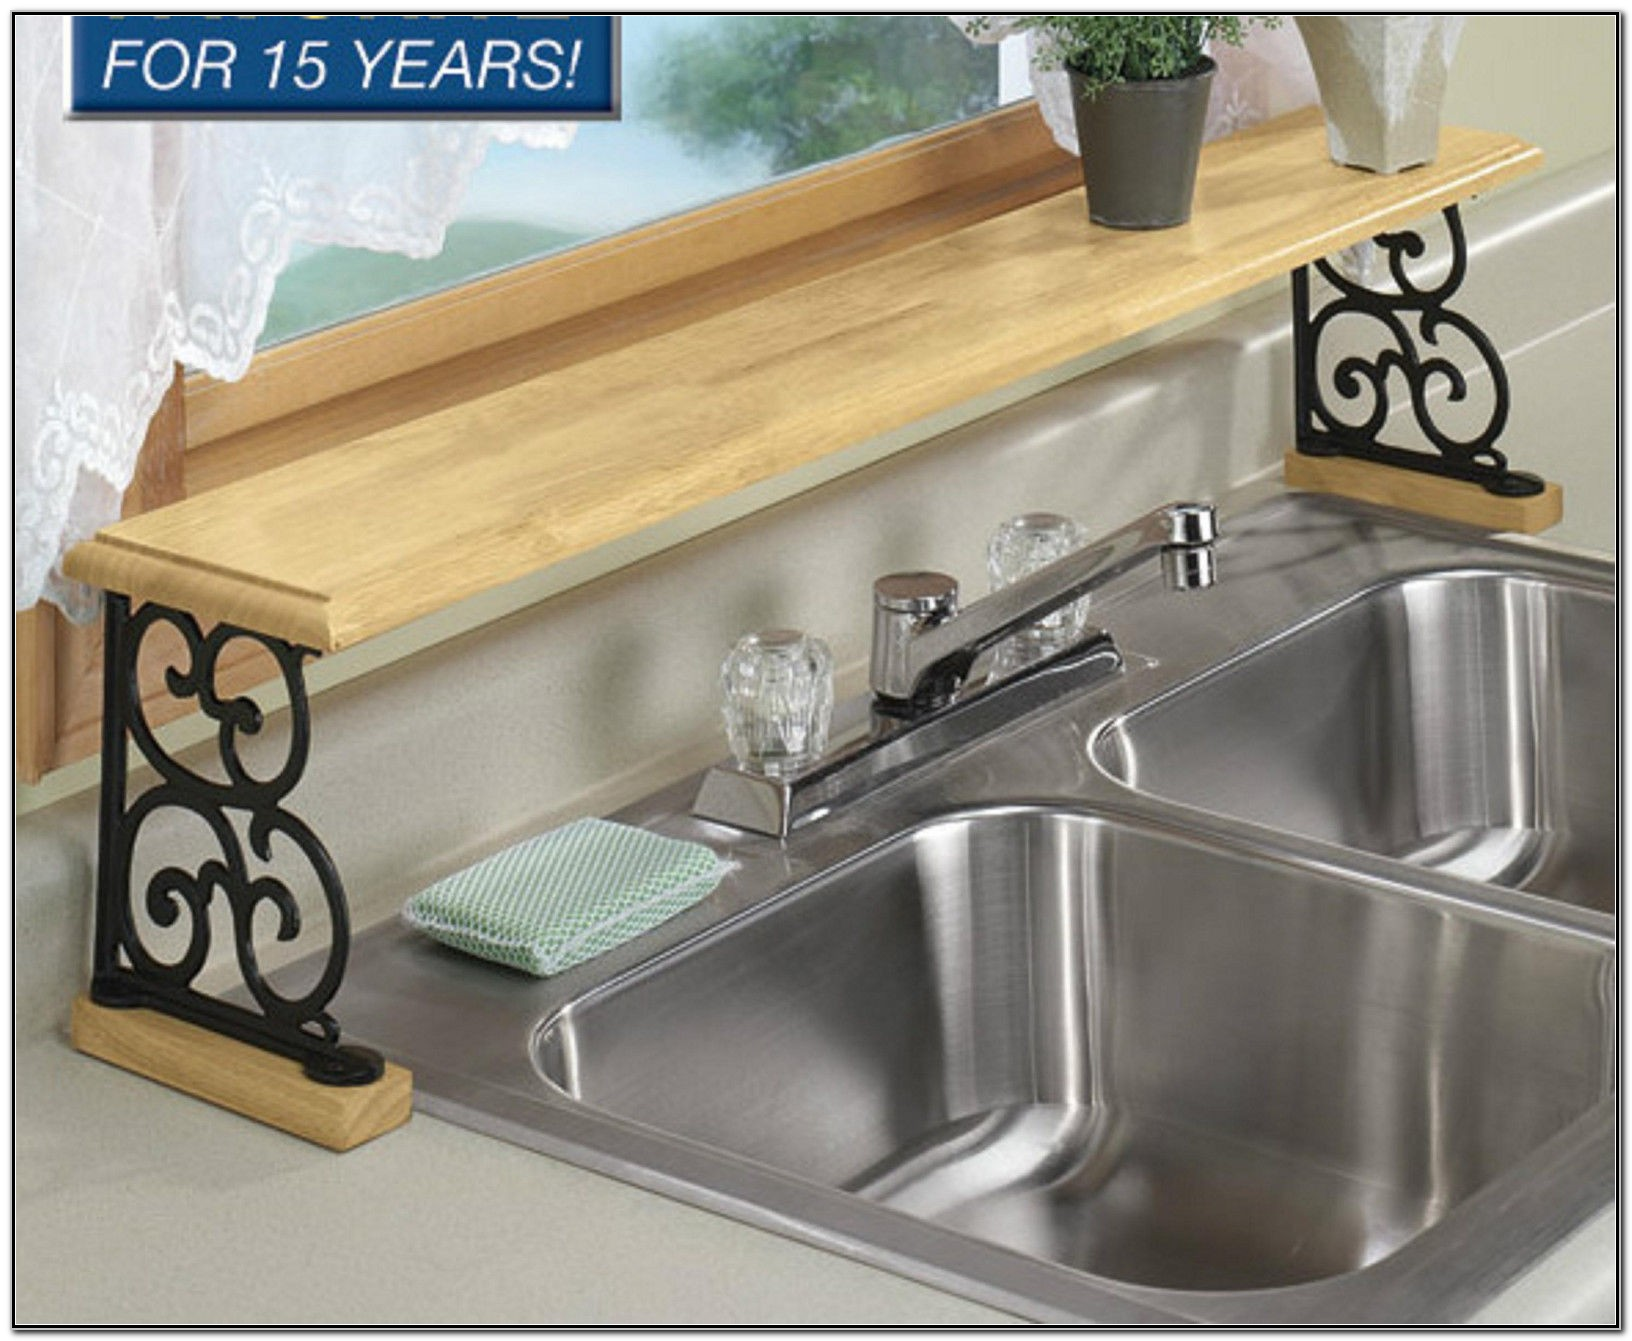 Kitchen Sink Shelf Organizer